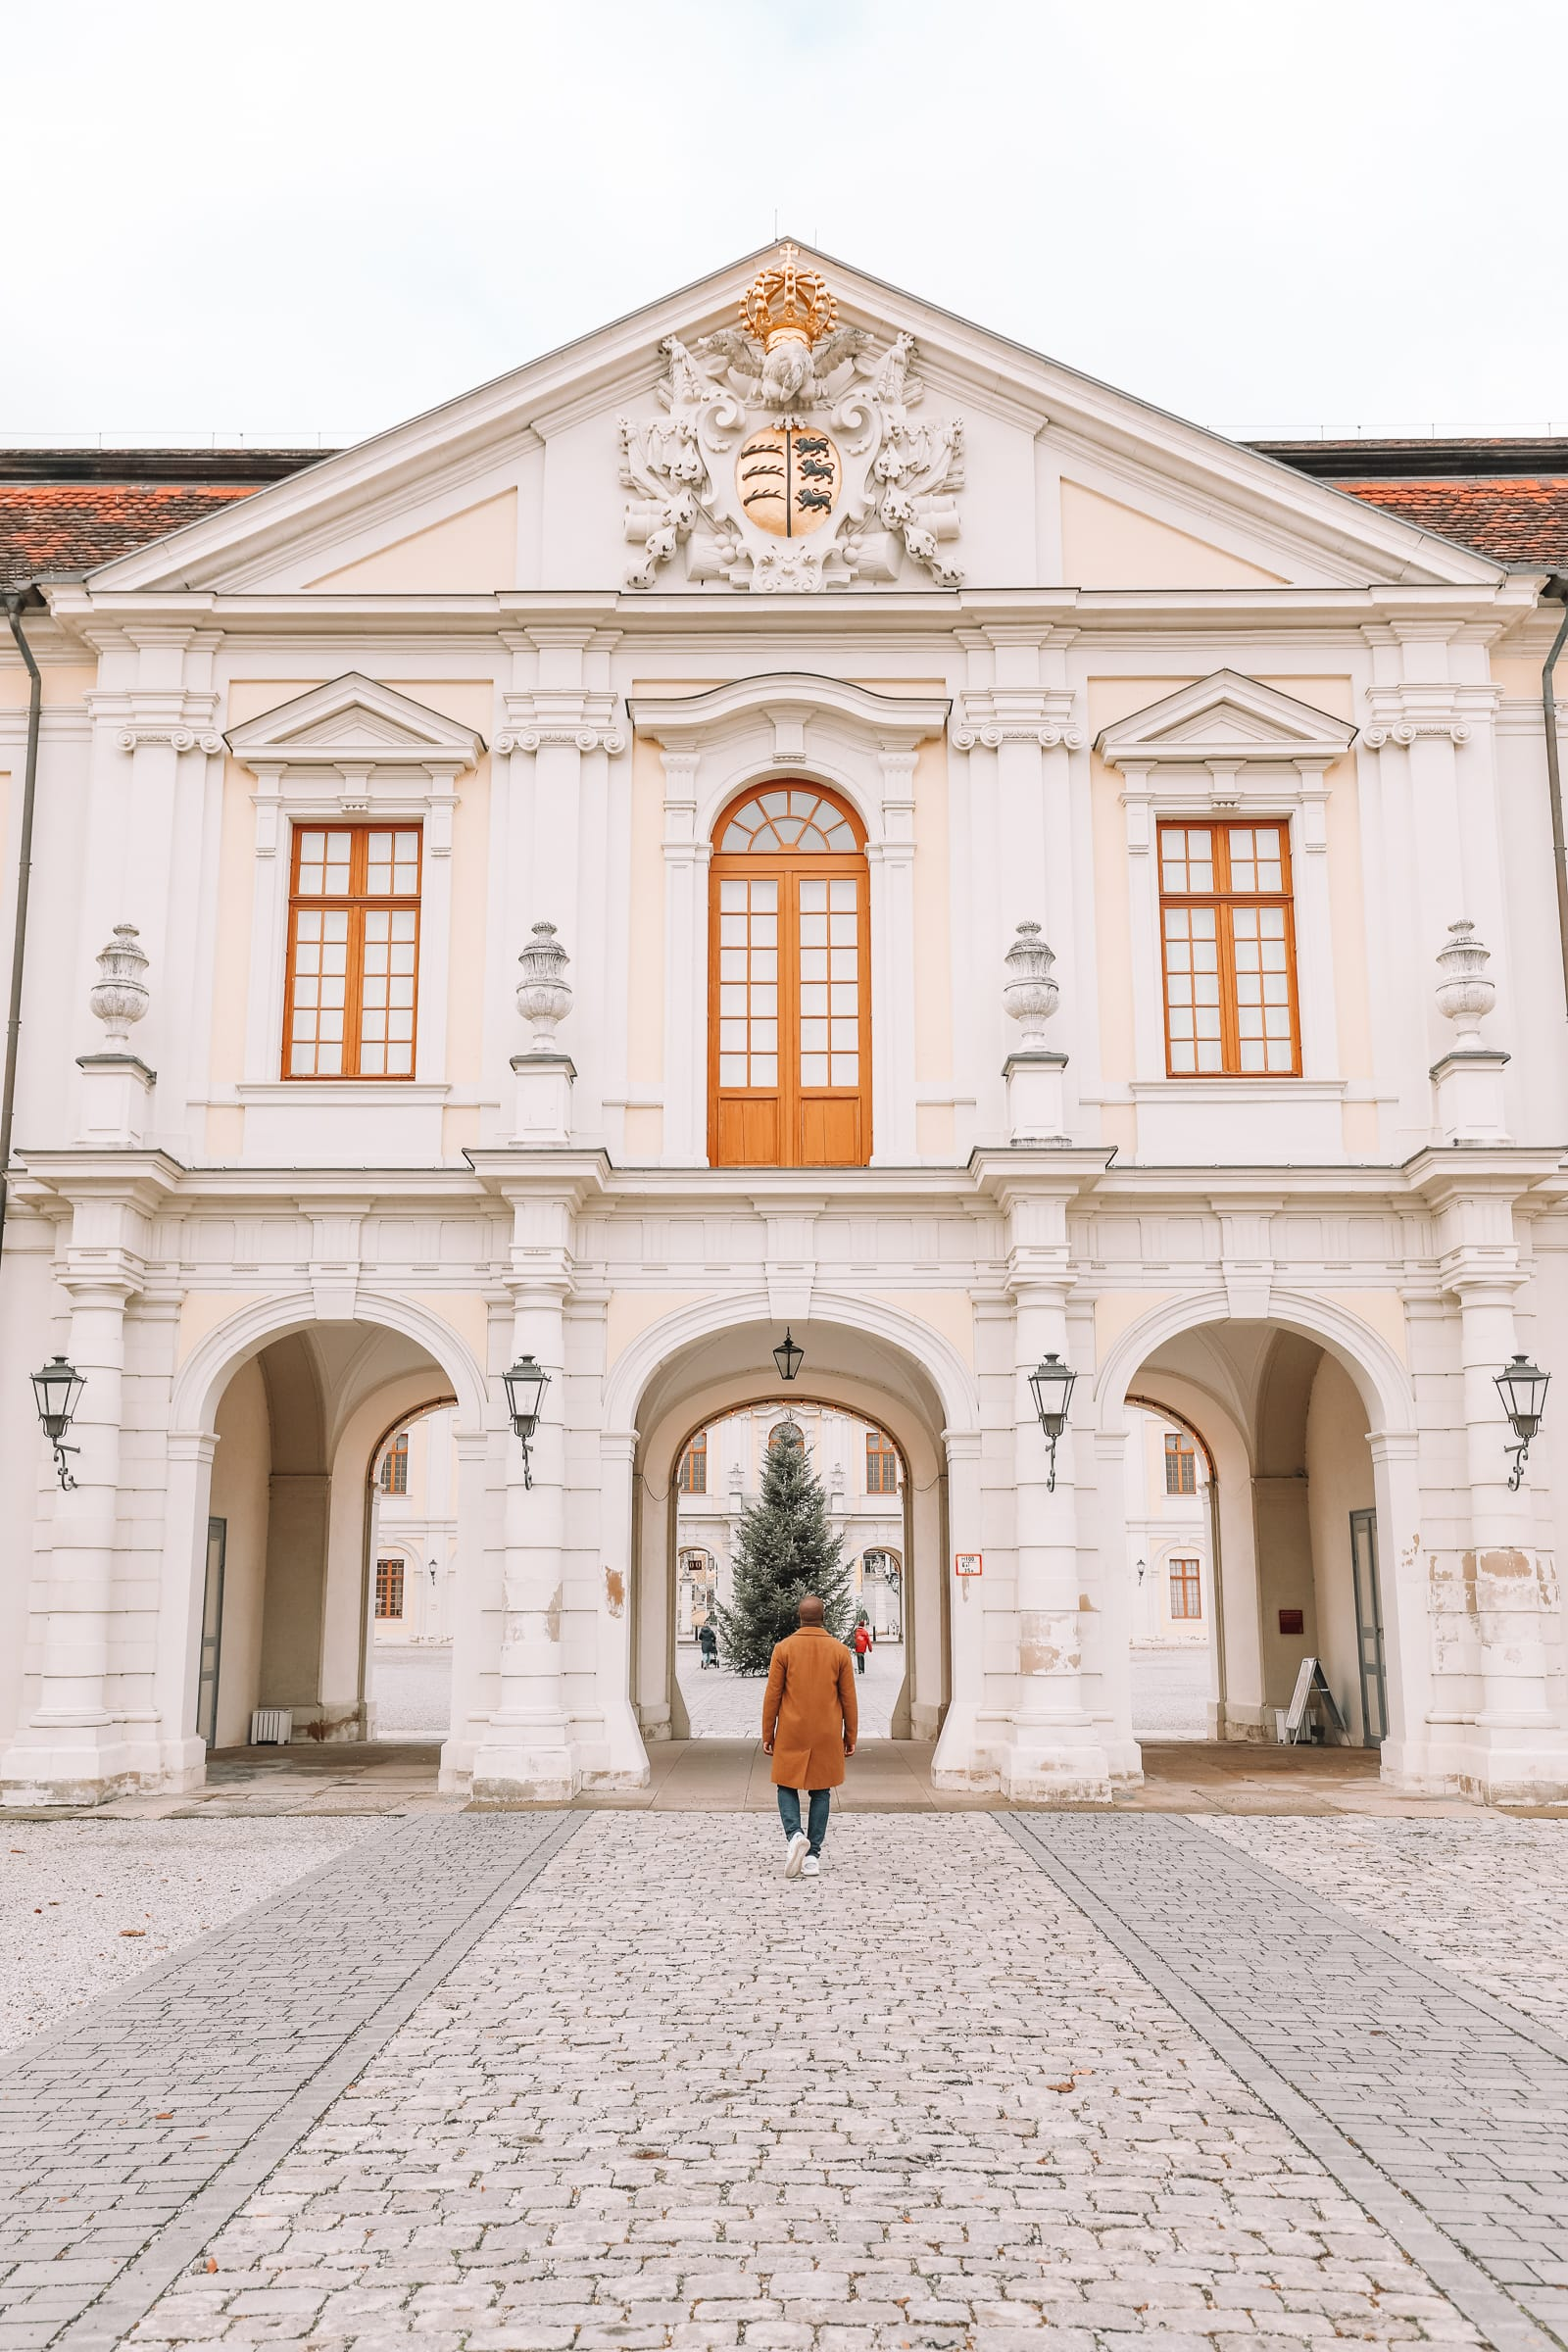 The Beautiful Baroque Ludwigsburg Palace... In Stuttgart, Germany (20)